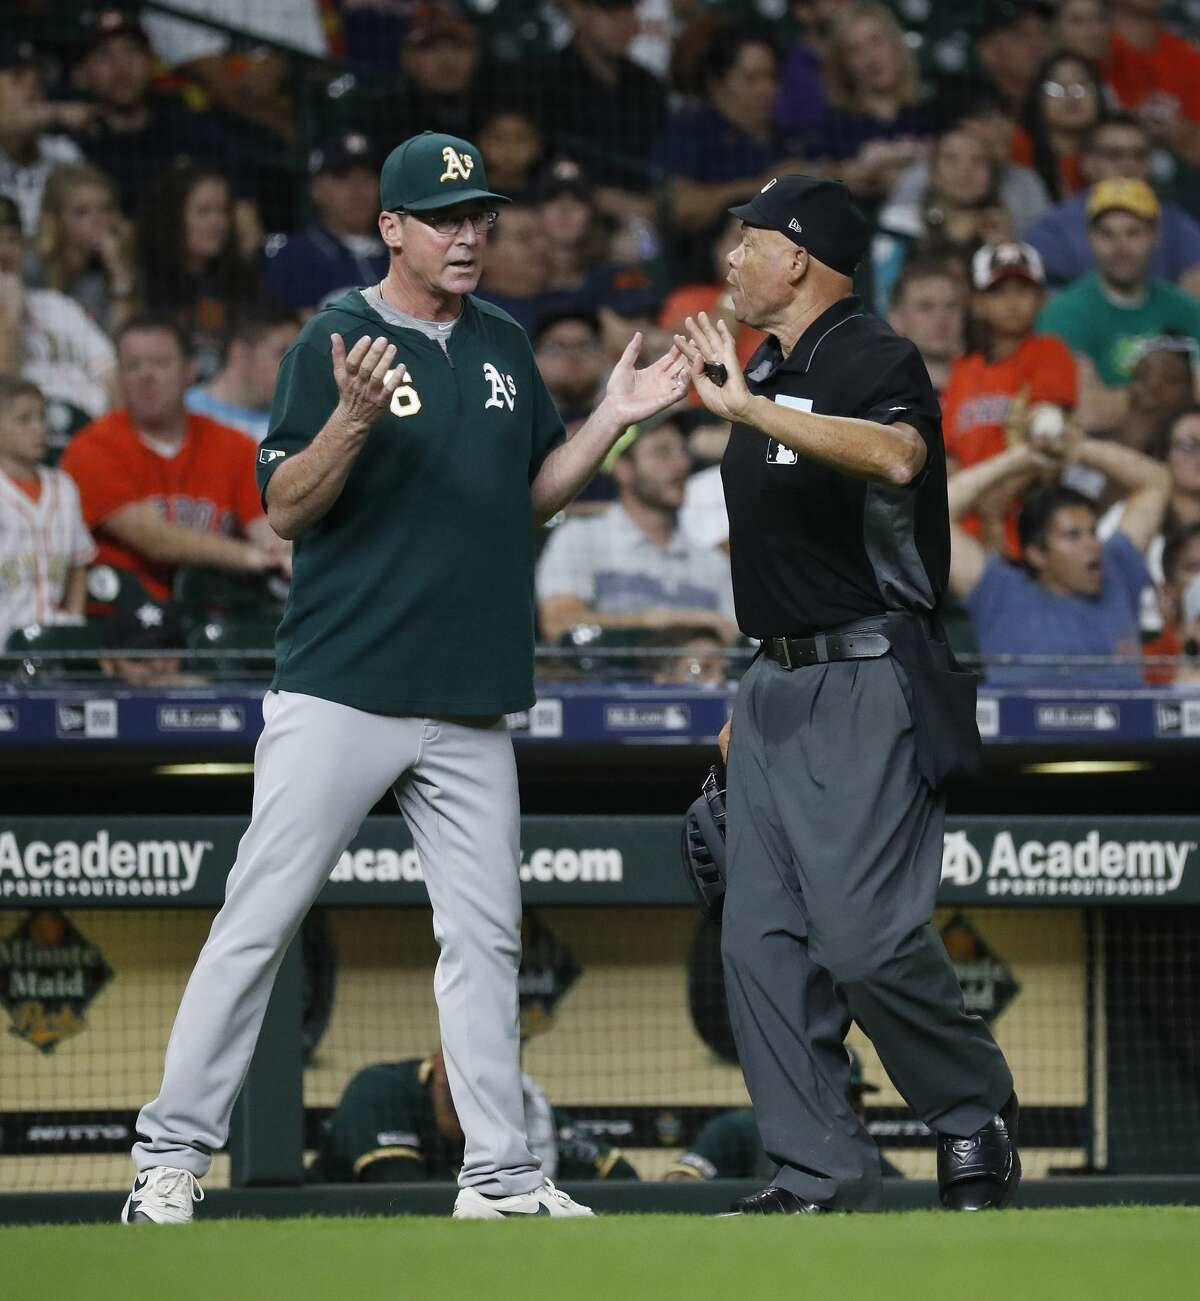 Oakland Athletics manager Bob Melvin (6) argues with home plate umpire Kerwin Danley after Ramon Laureano hit a ground-rule double during the eleventh inning of an MLB baseball game at Minute Maid Park, Tuesday, July 23, 2019.